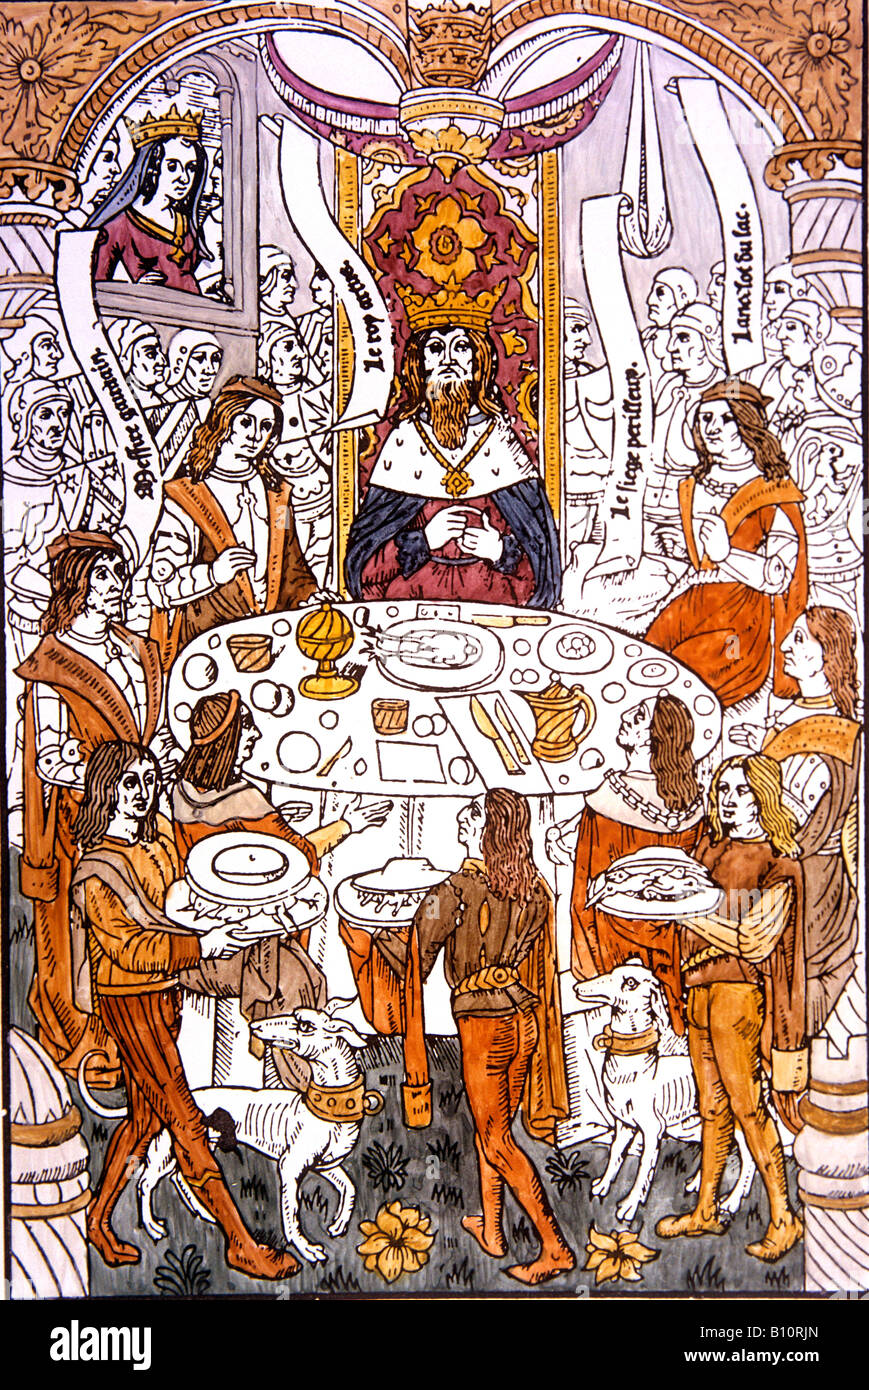 king arthur and his knights of the round table After the grail is found the last battle of the knights of the round table is fought king arthur is buried in avalon, a secret island the book has illustrated covers.